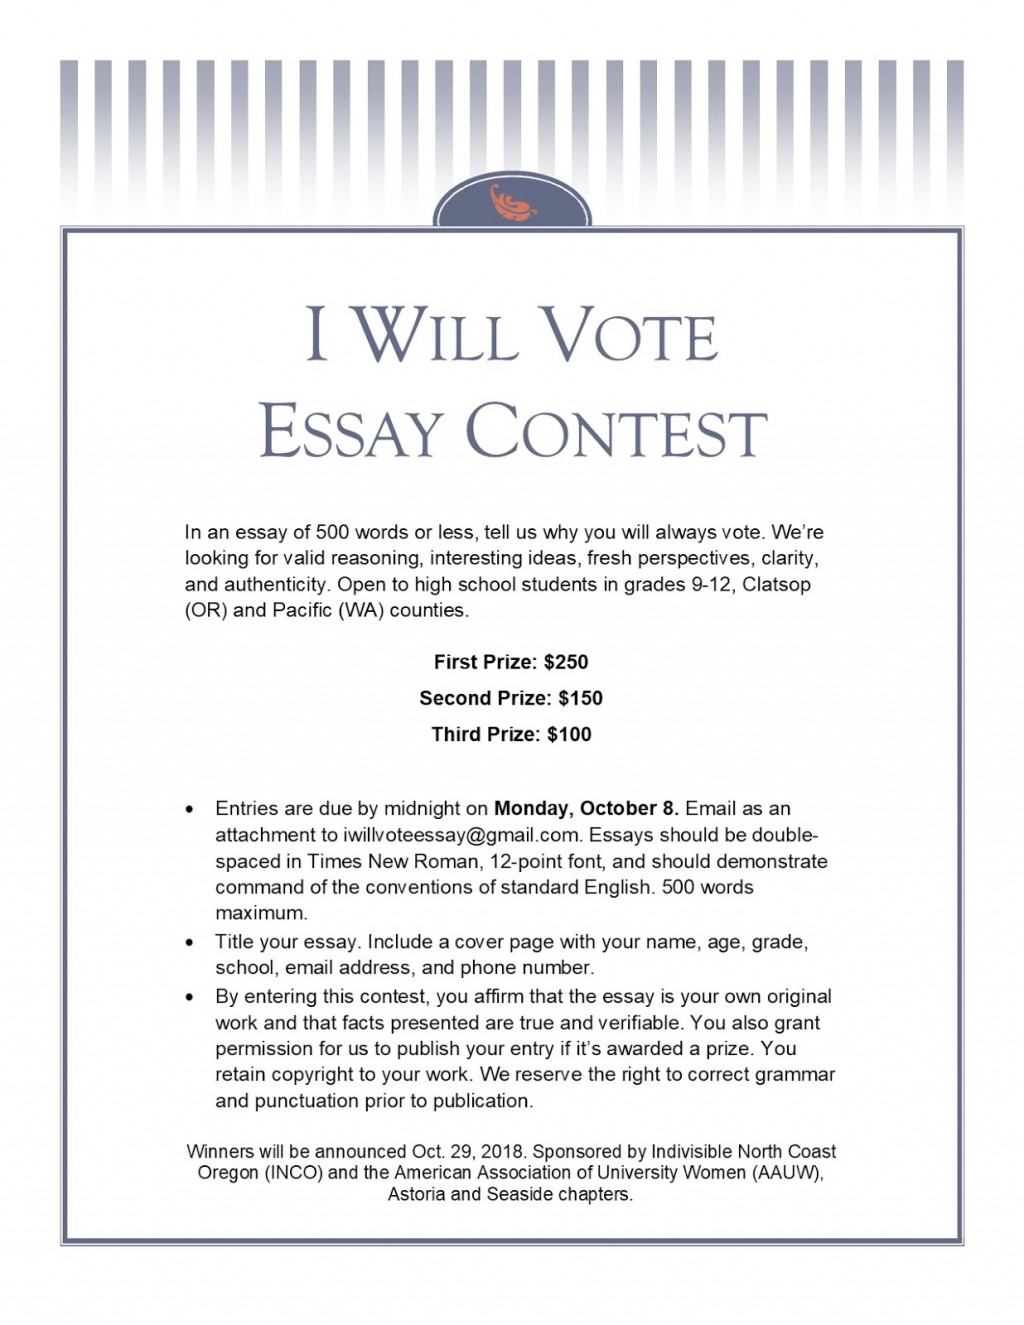 019 Why Is It Important To Vote Essay Contest 182bessay2bcontest2bflier2bdraft Top Large